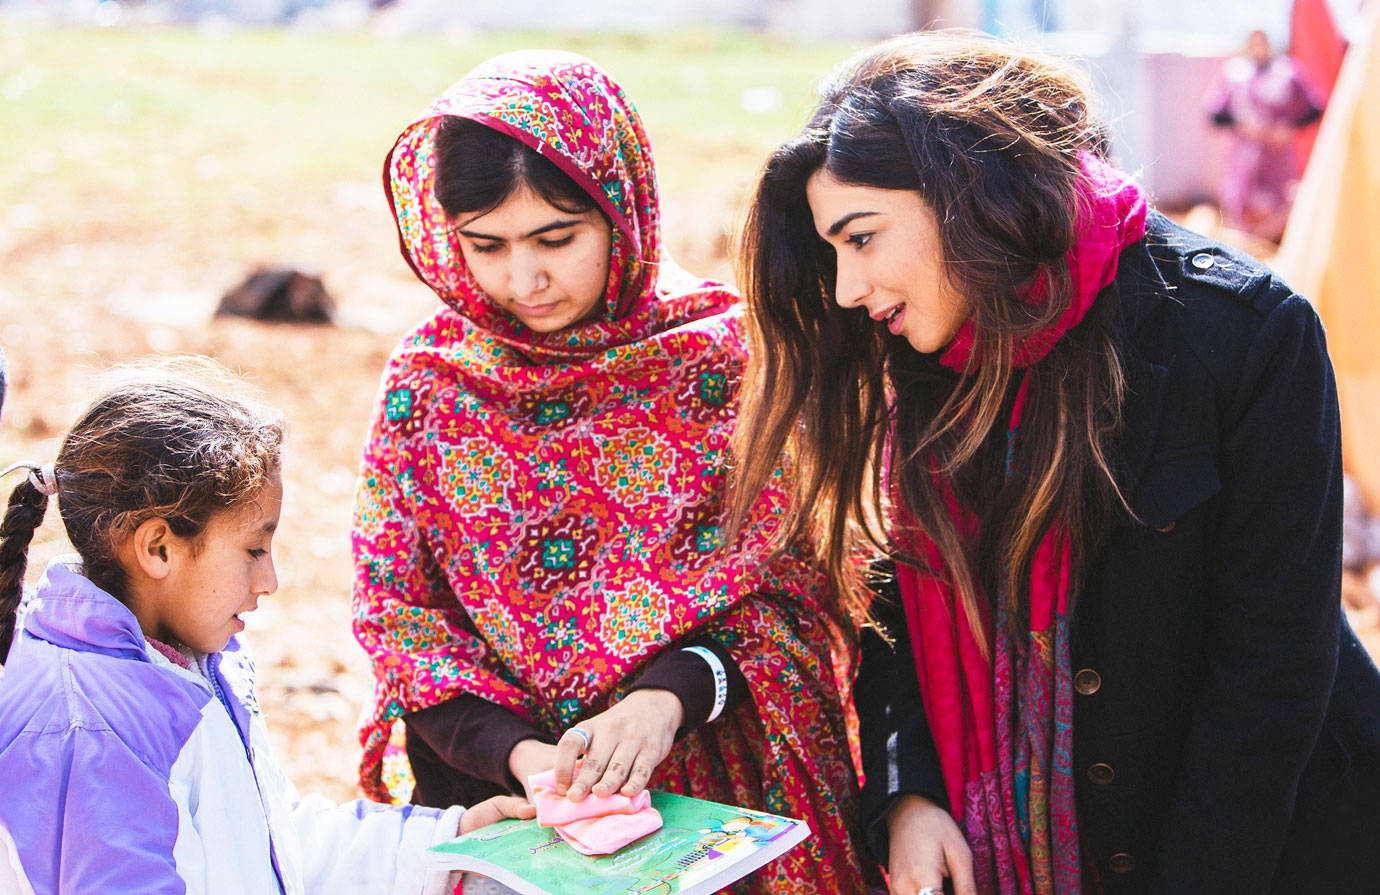 Malala and Shiza spread passionate awareness about the social and economic impact of girls' education and empowering girls to raise their voices, unlock their potential, and demand change.